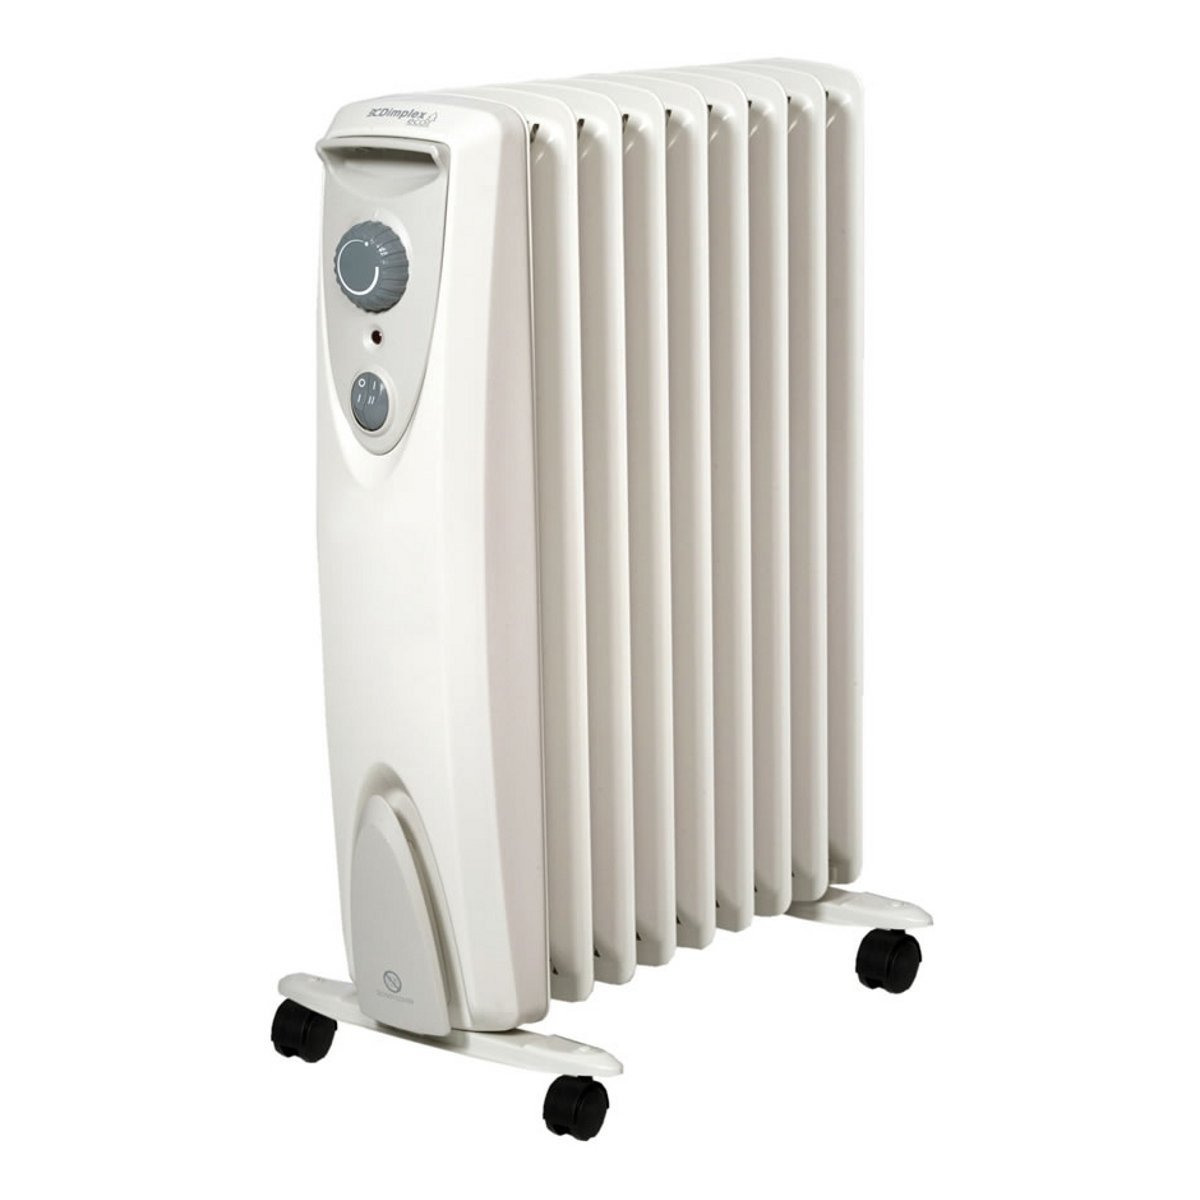 Dimplex OFRC20C Electric Oil Free Column Heater, 2 Kilowatt